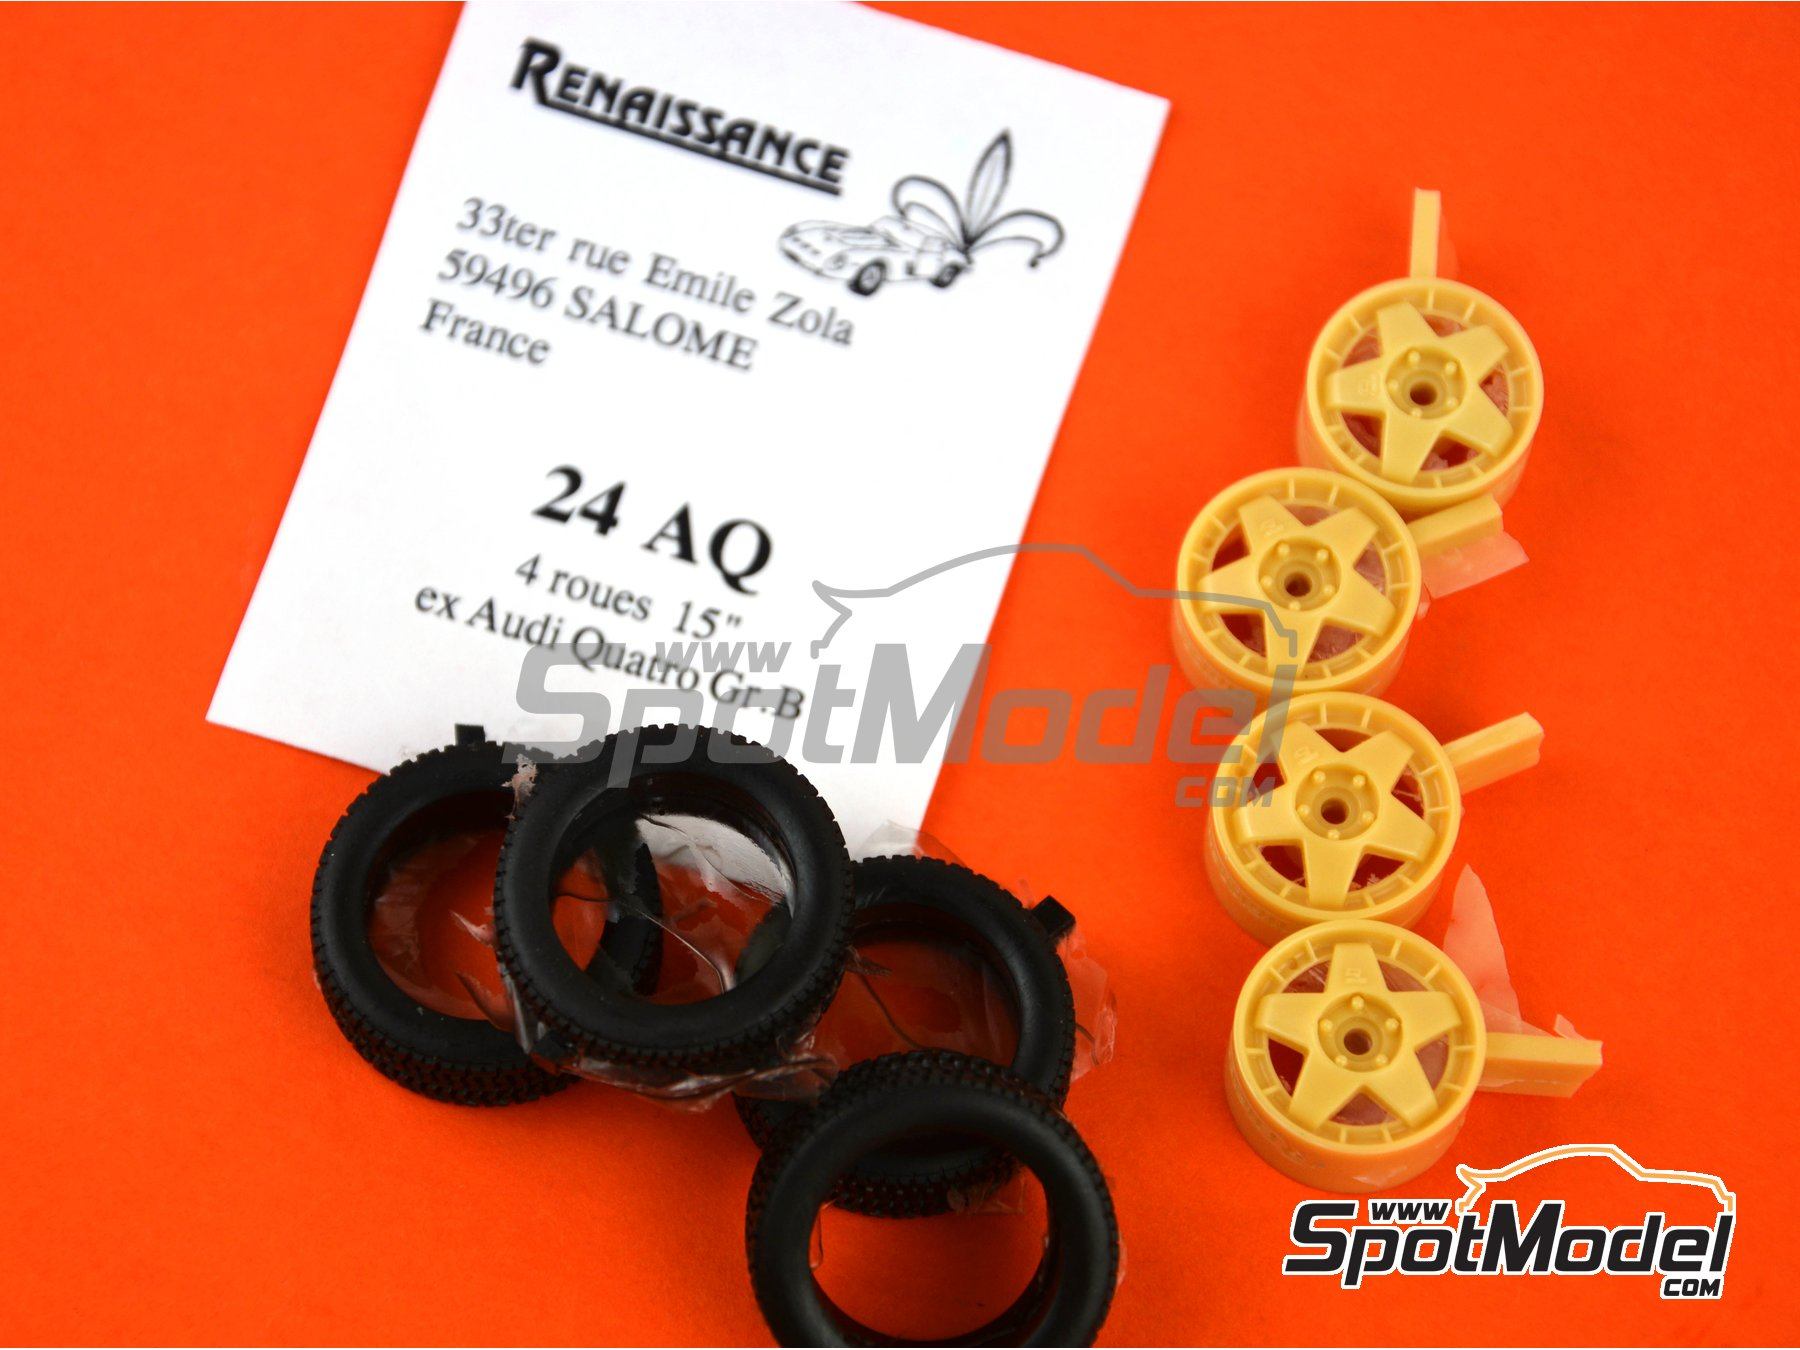 Image 1: Audi Quattro Group B 15 inches rims | Rims and tyres set in 1/24 scale manufactured by Renaissance Models (ref. 24AQ)